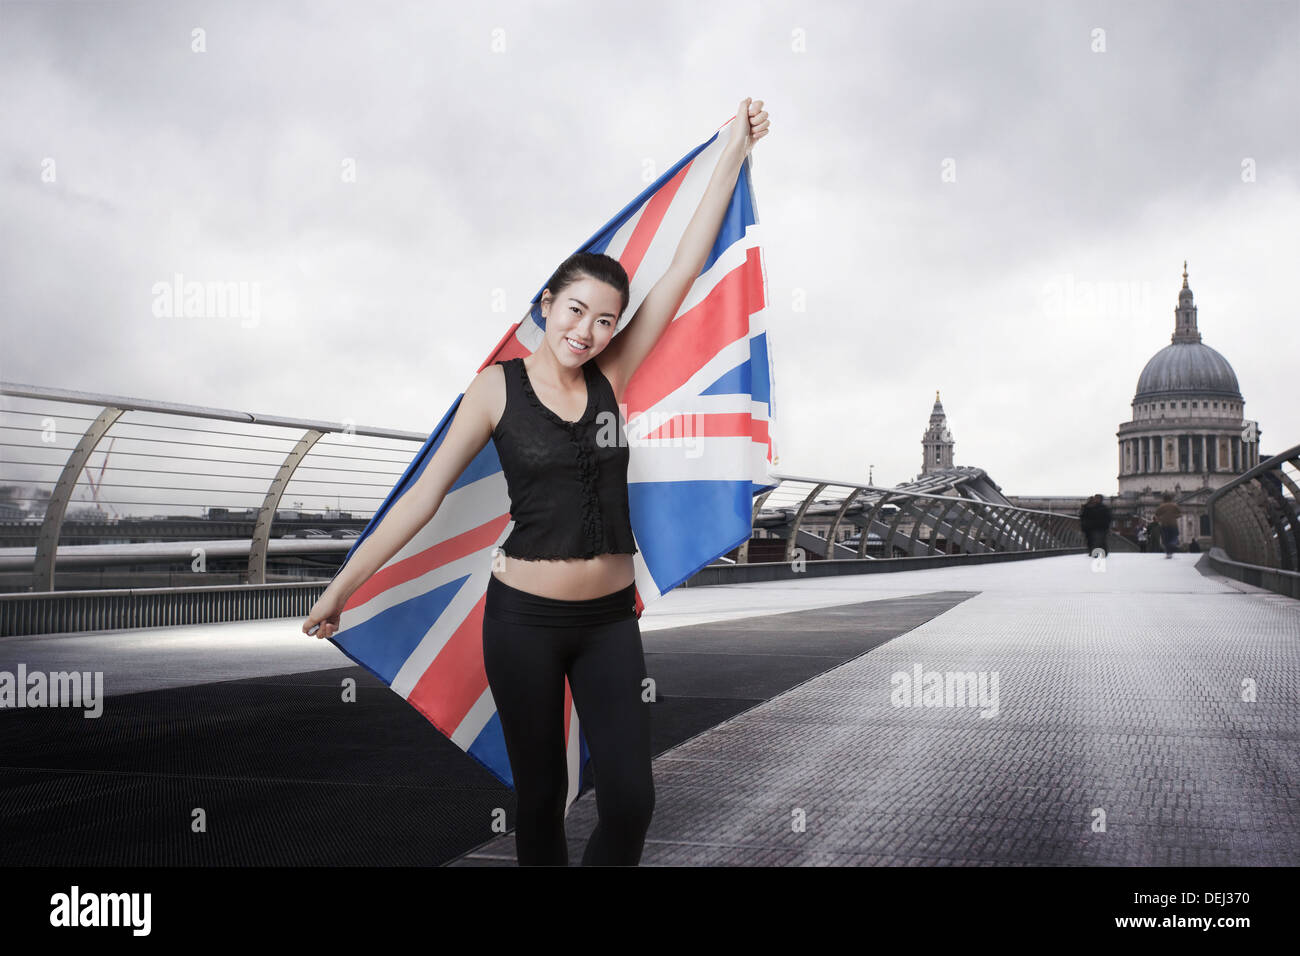 Olympic competitor with Union Jack front St Paul's Cathedral London - Stock Image